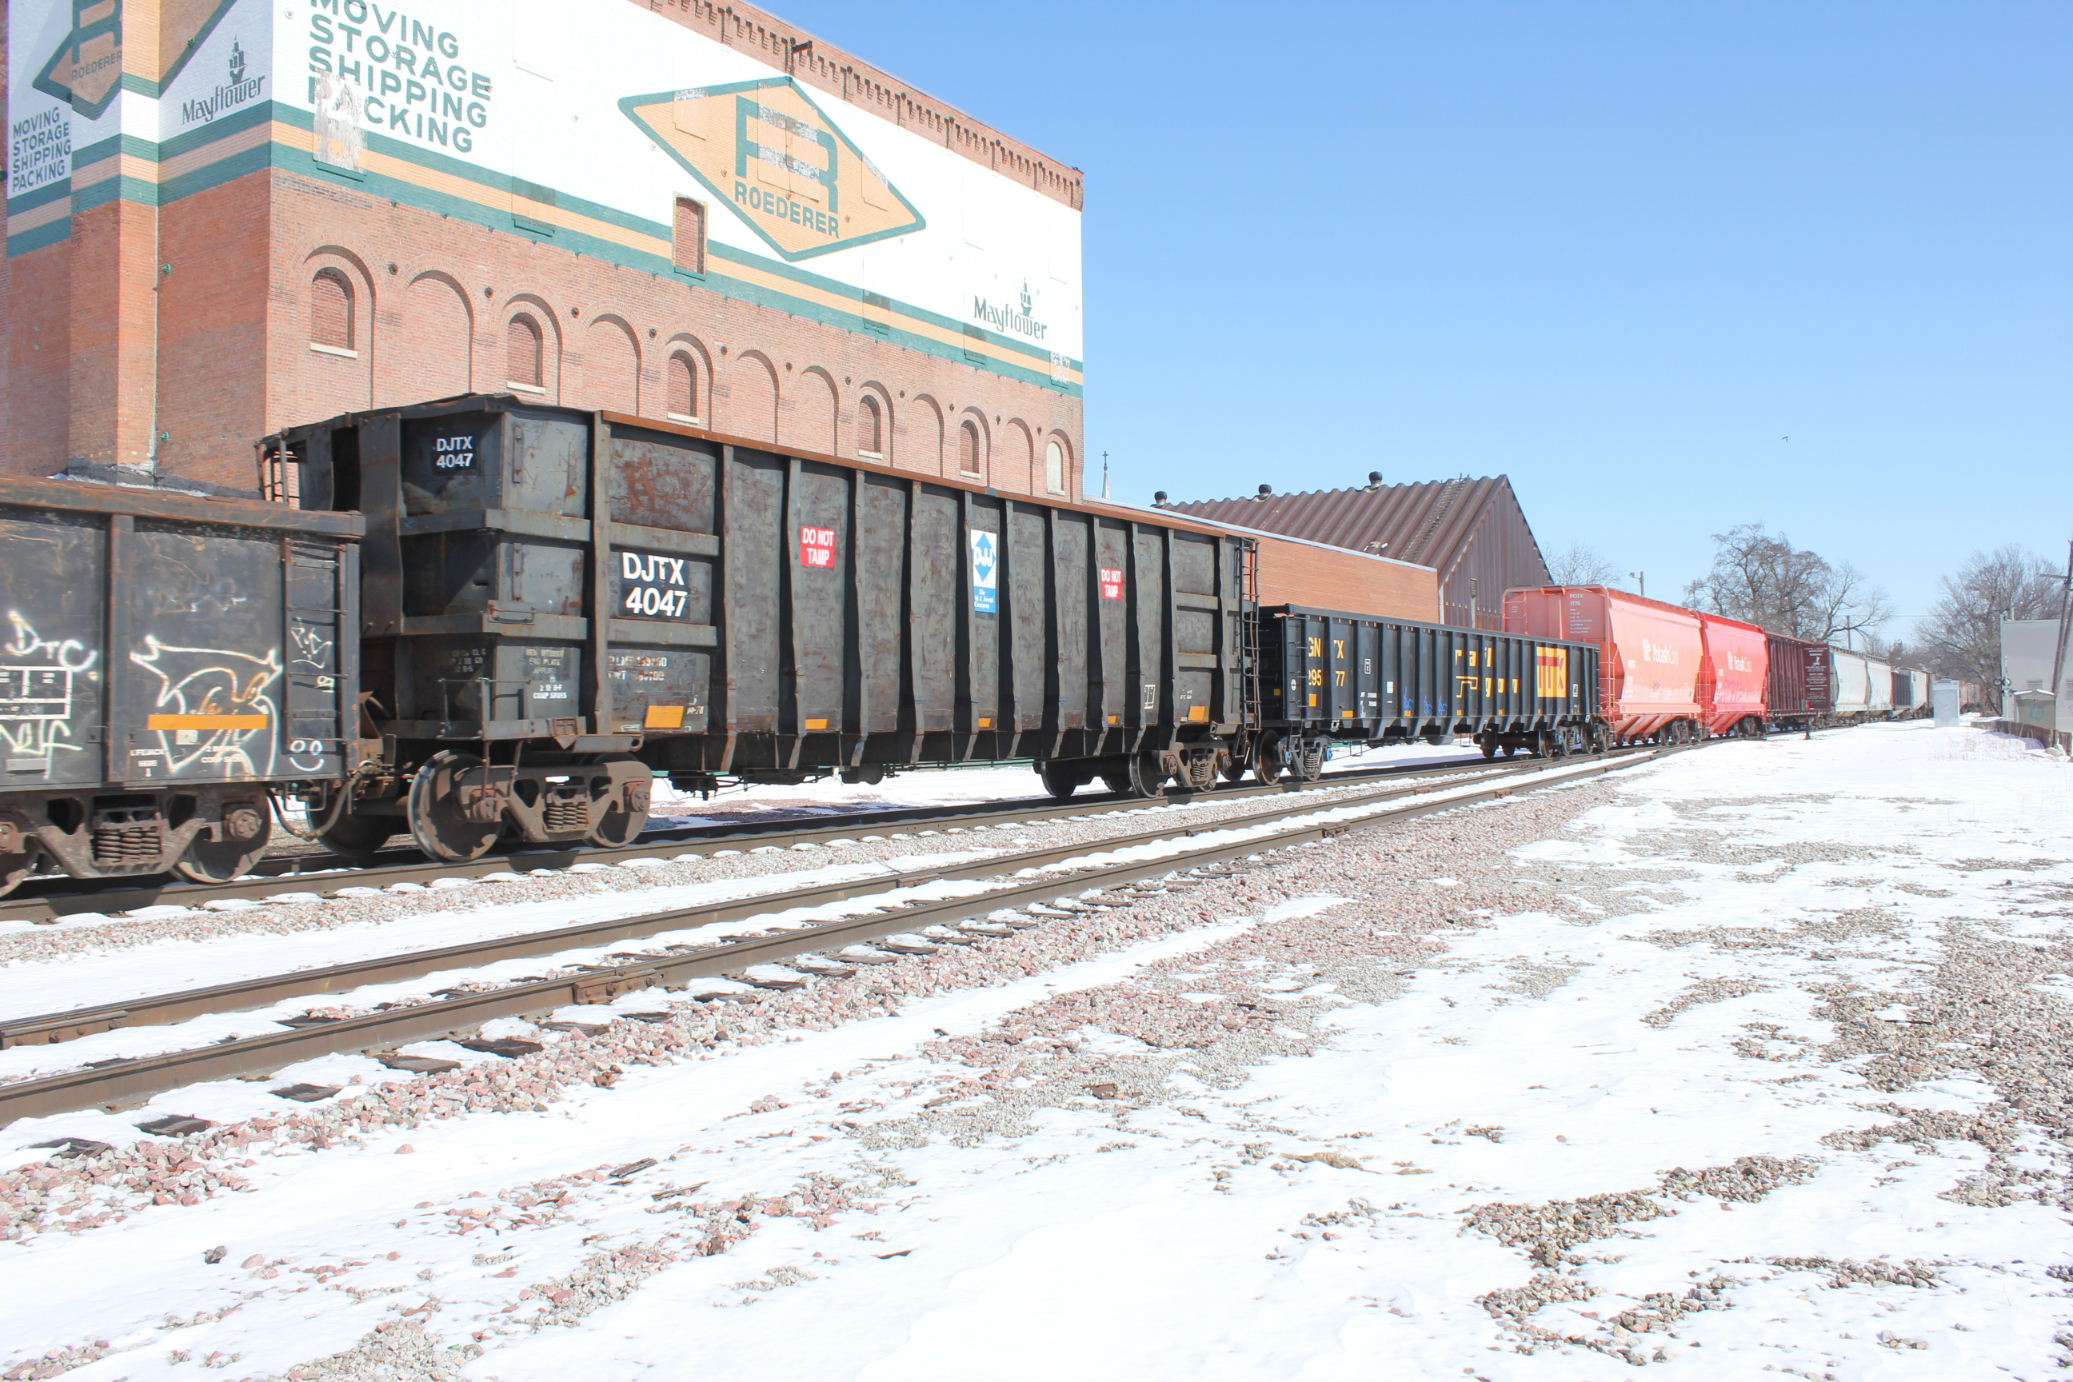 These scrap hoppers are common on ICE trains but not so much on IAIS.